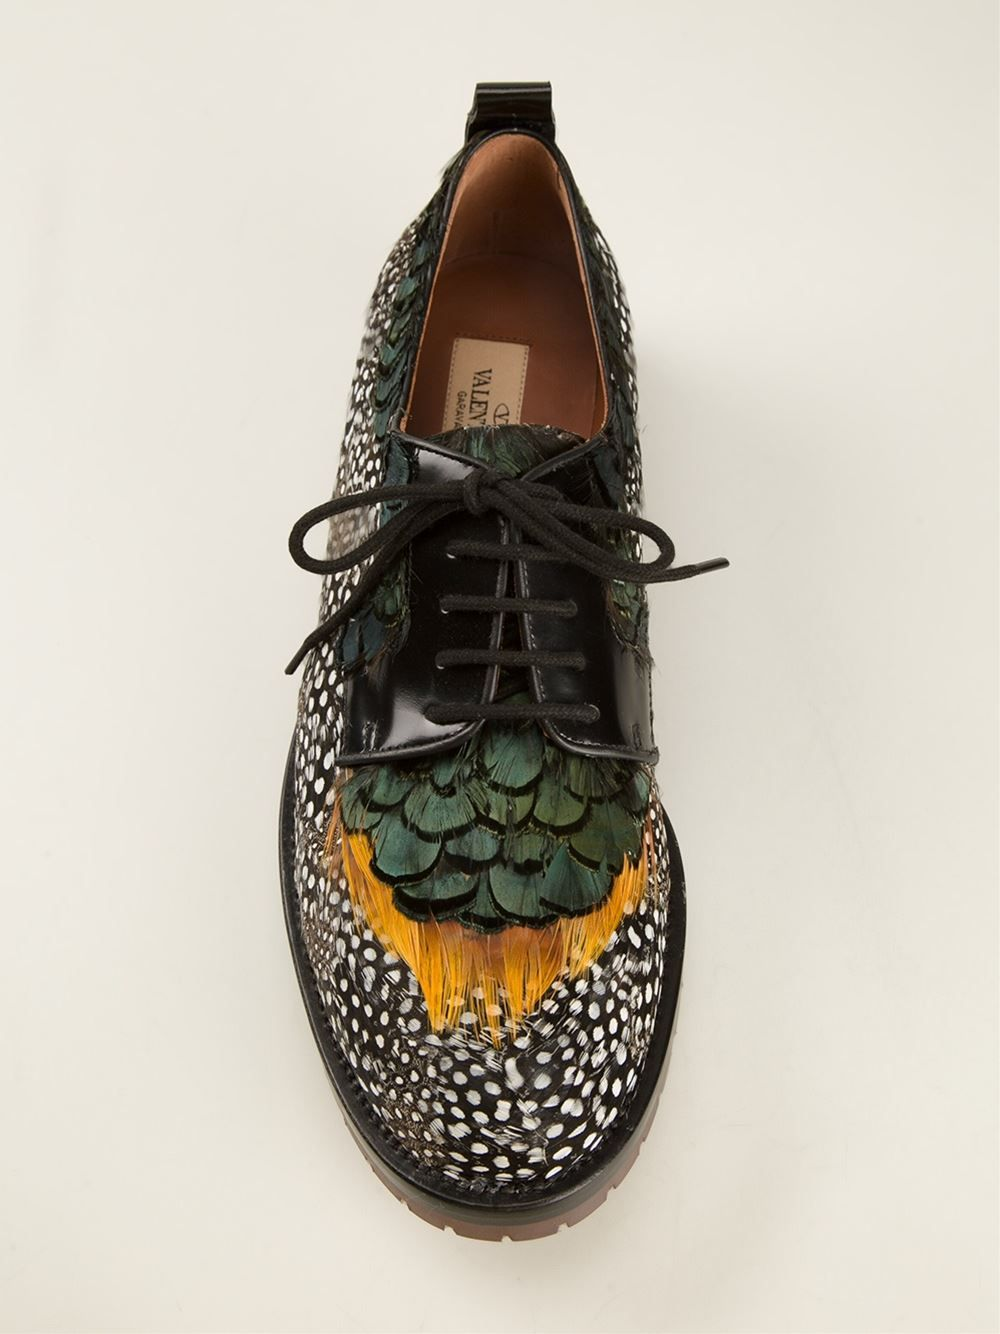 Valentino Garavani Feather Brogues Μοκασίνια 5b030722af3